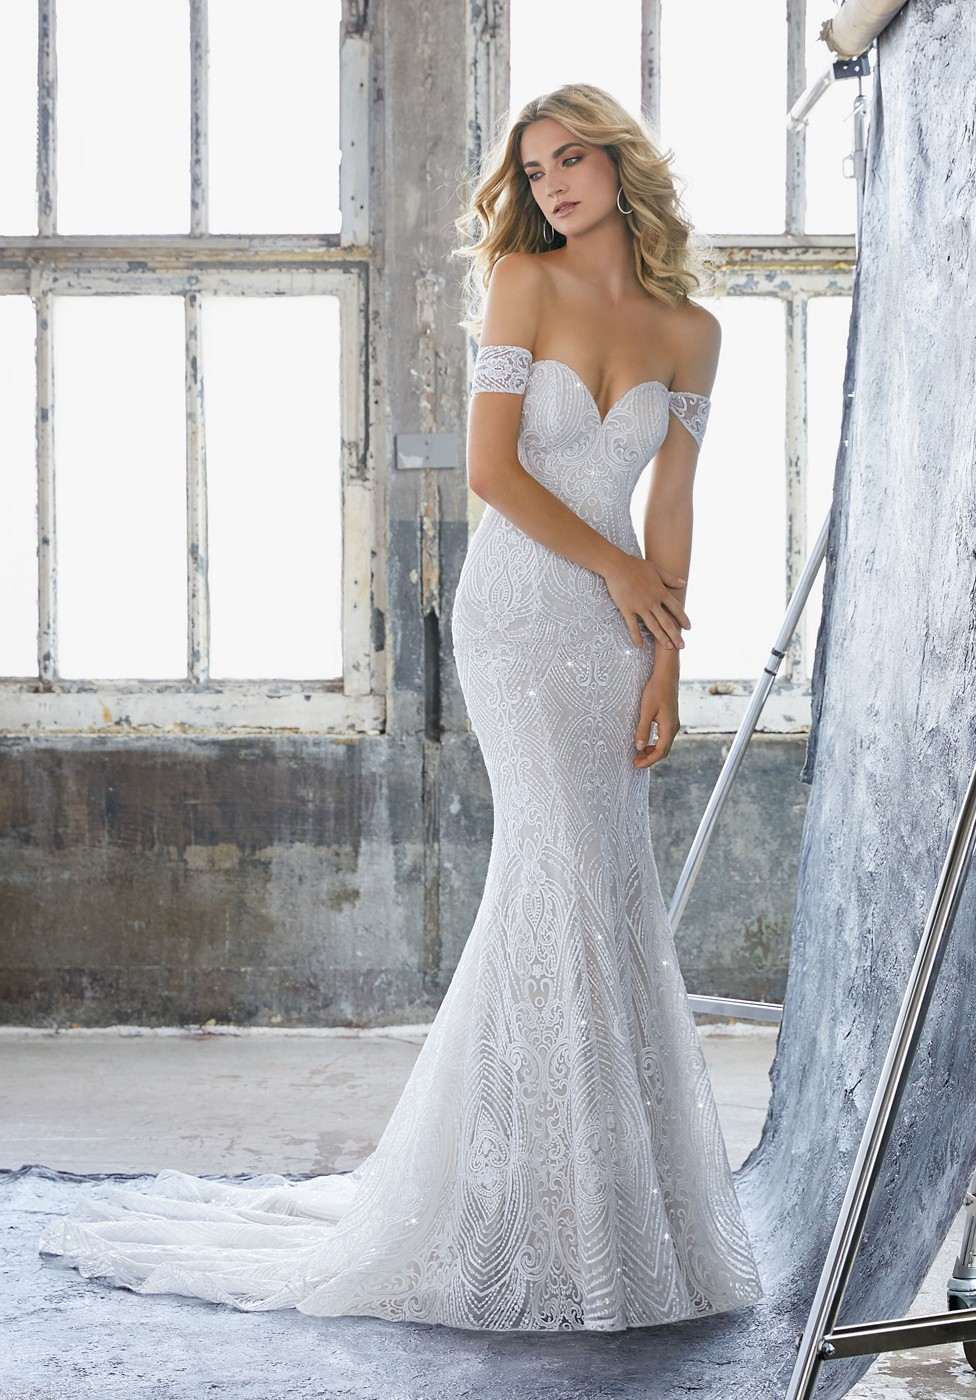 Mori Lee Karissa Style 8222 Dress - MadameBridal.com